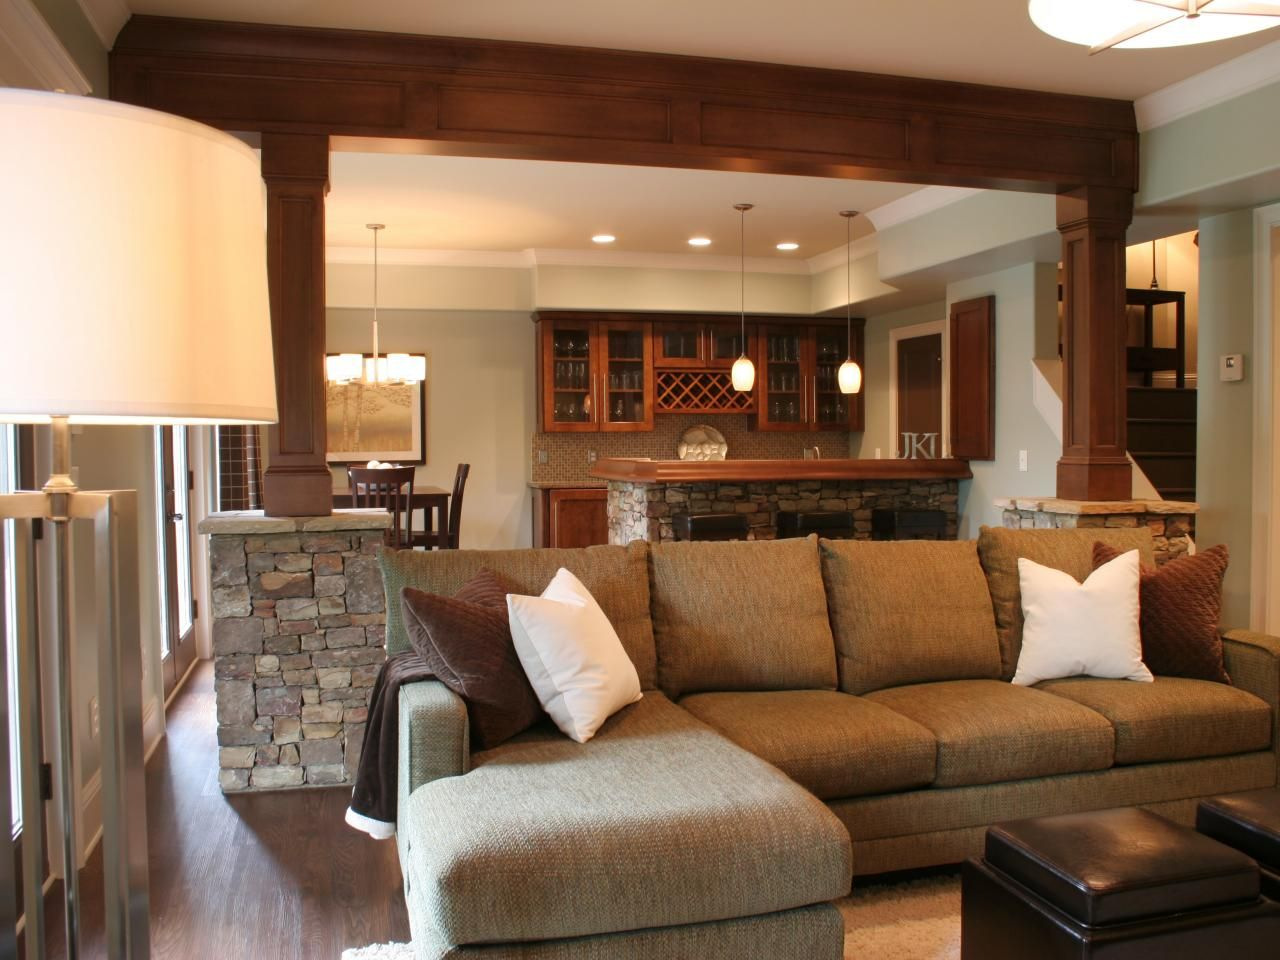 Basement design ideas basements hgtv and beams - Basements by design ...